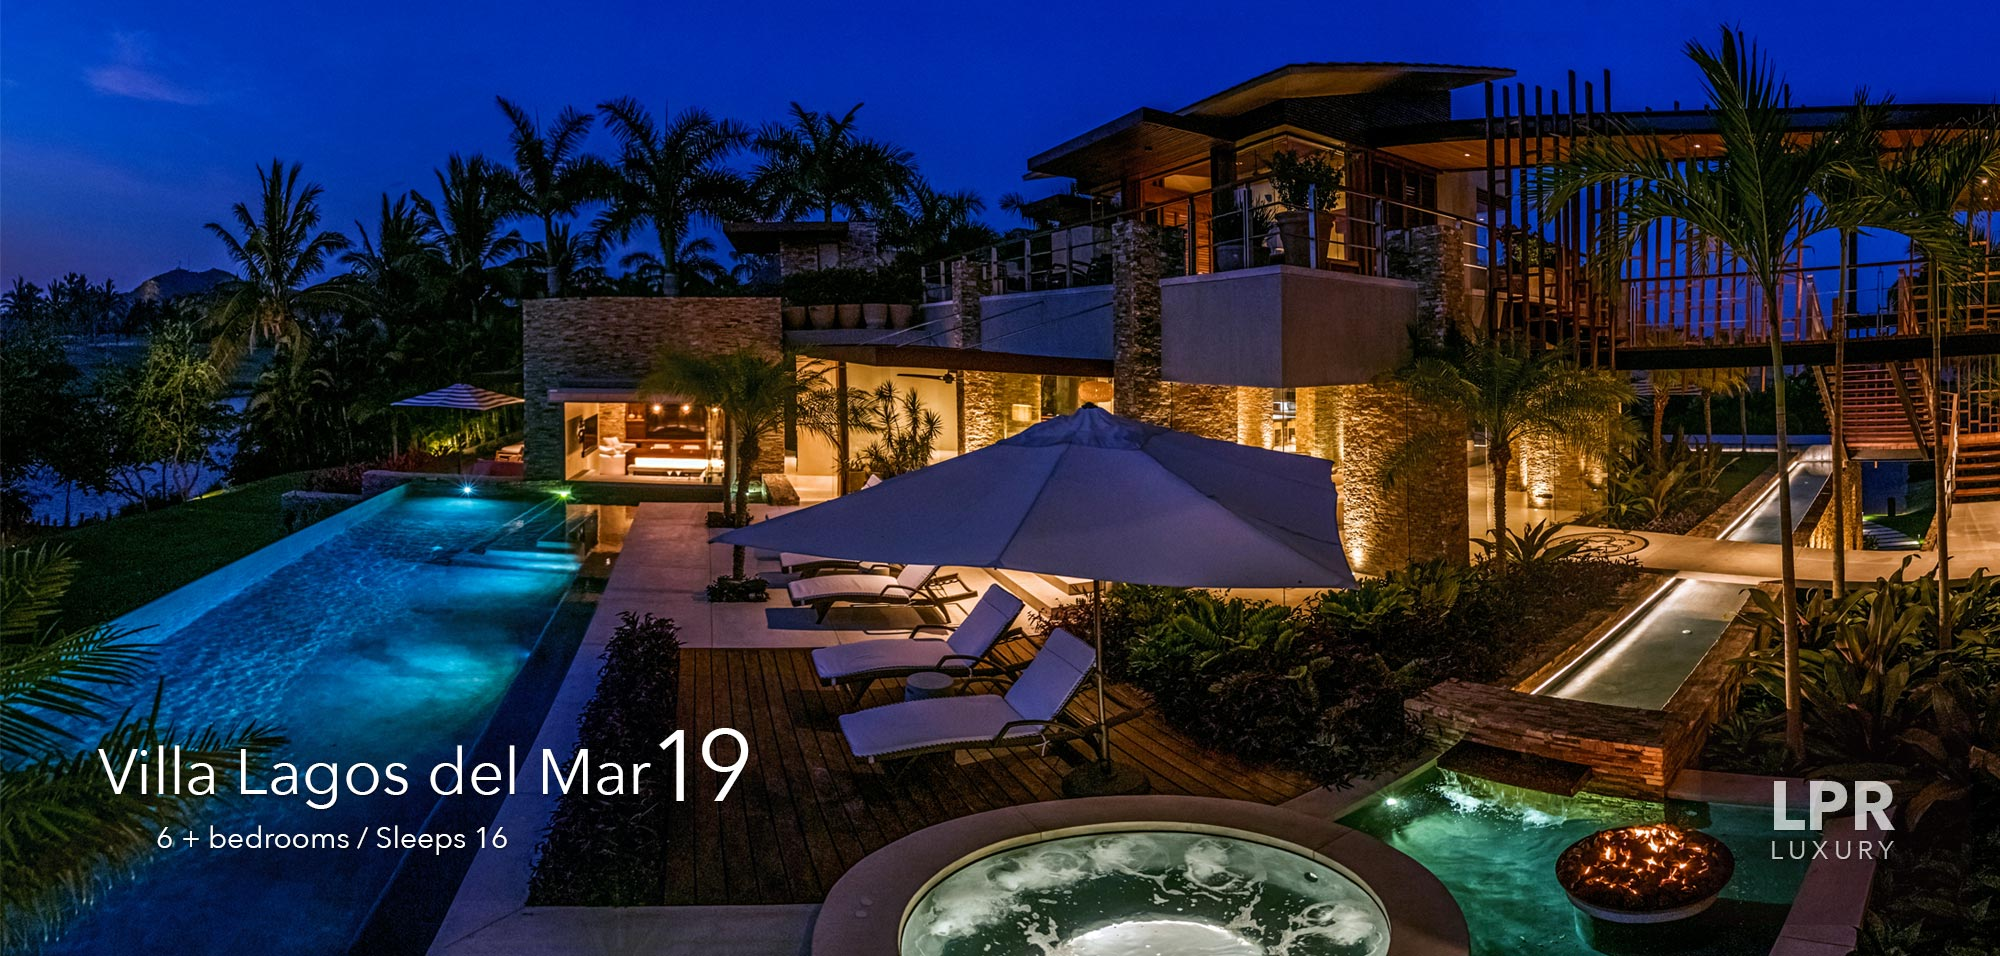 Villa Lagos del Mar 19 - Luxury Punta Mita Real Estate and Vacation Rentals Villas